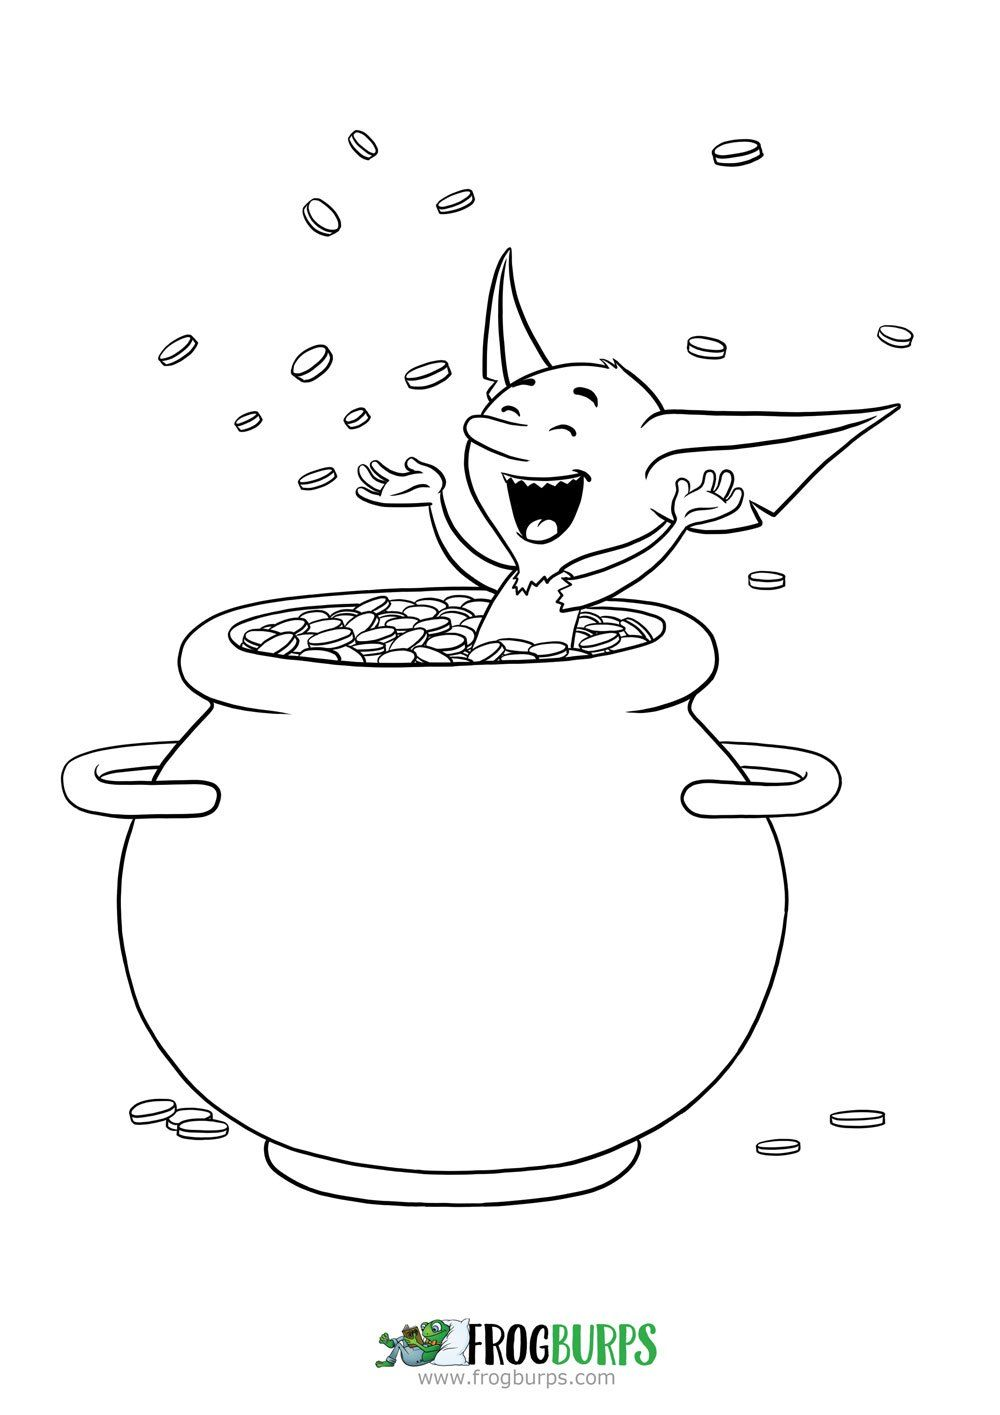 Goblin and Pig - Pot of Gold | Coloring Page | Frogburps Coloring ...